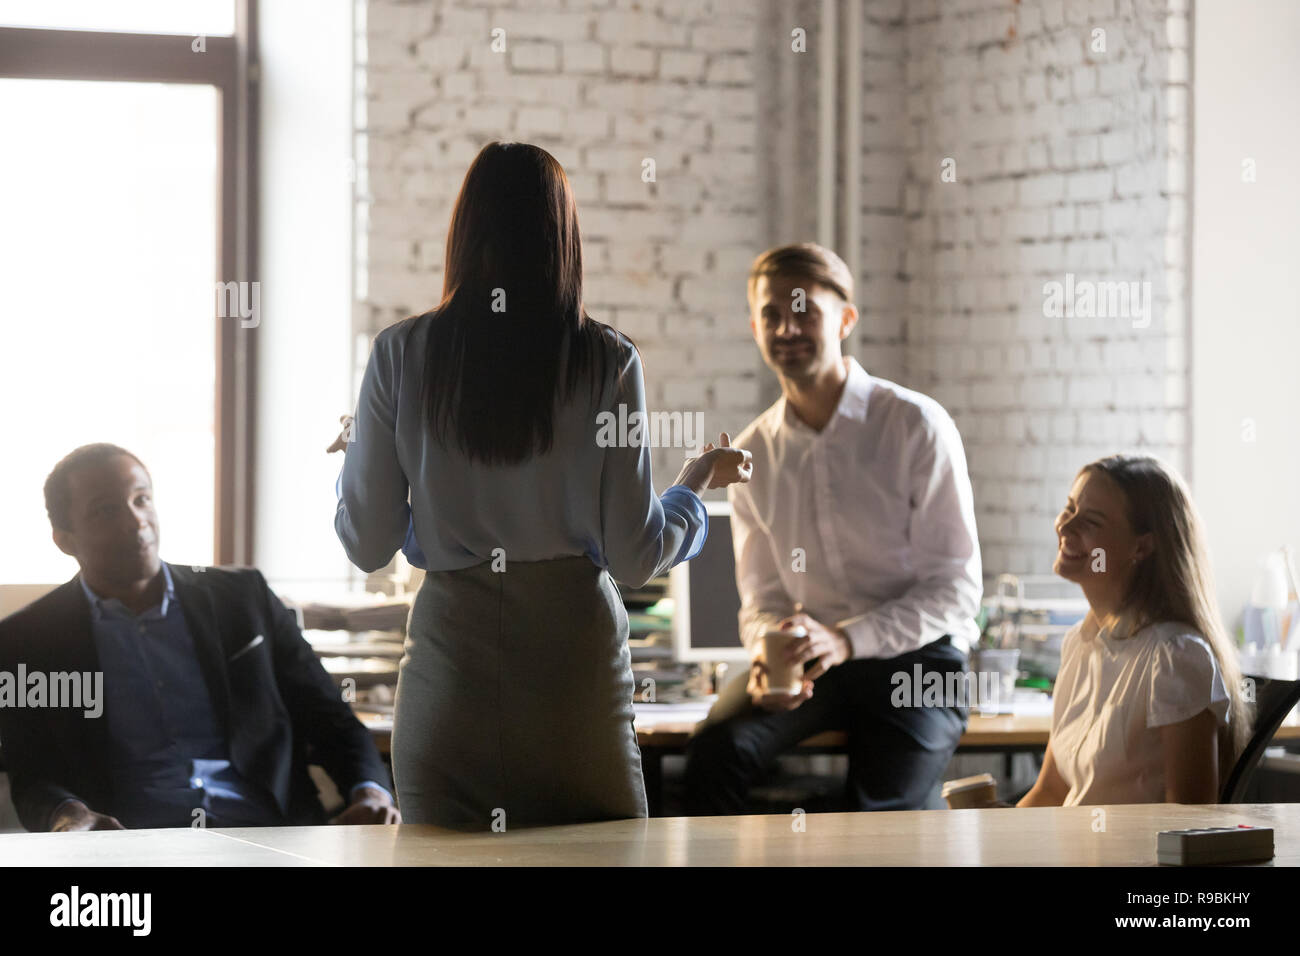 Rear view at female leader speaking at diverse group meeting Stock Photo